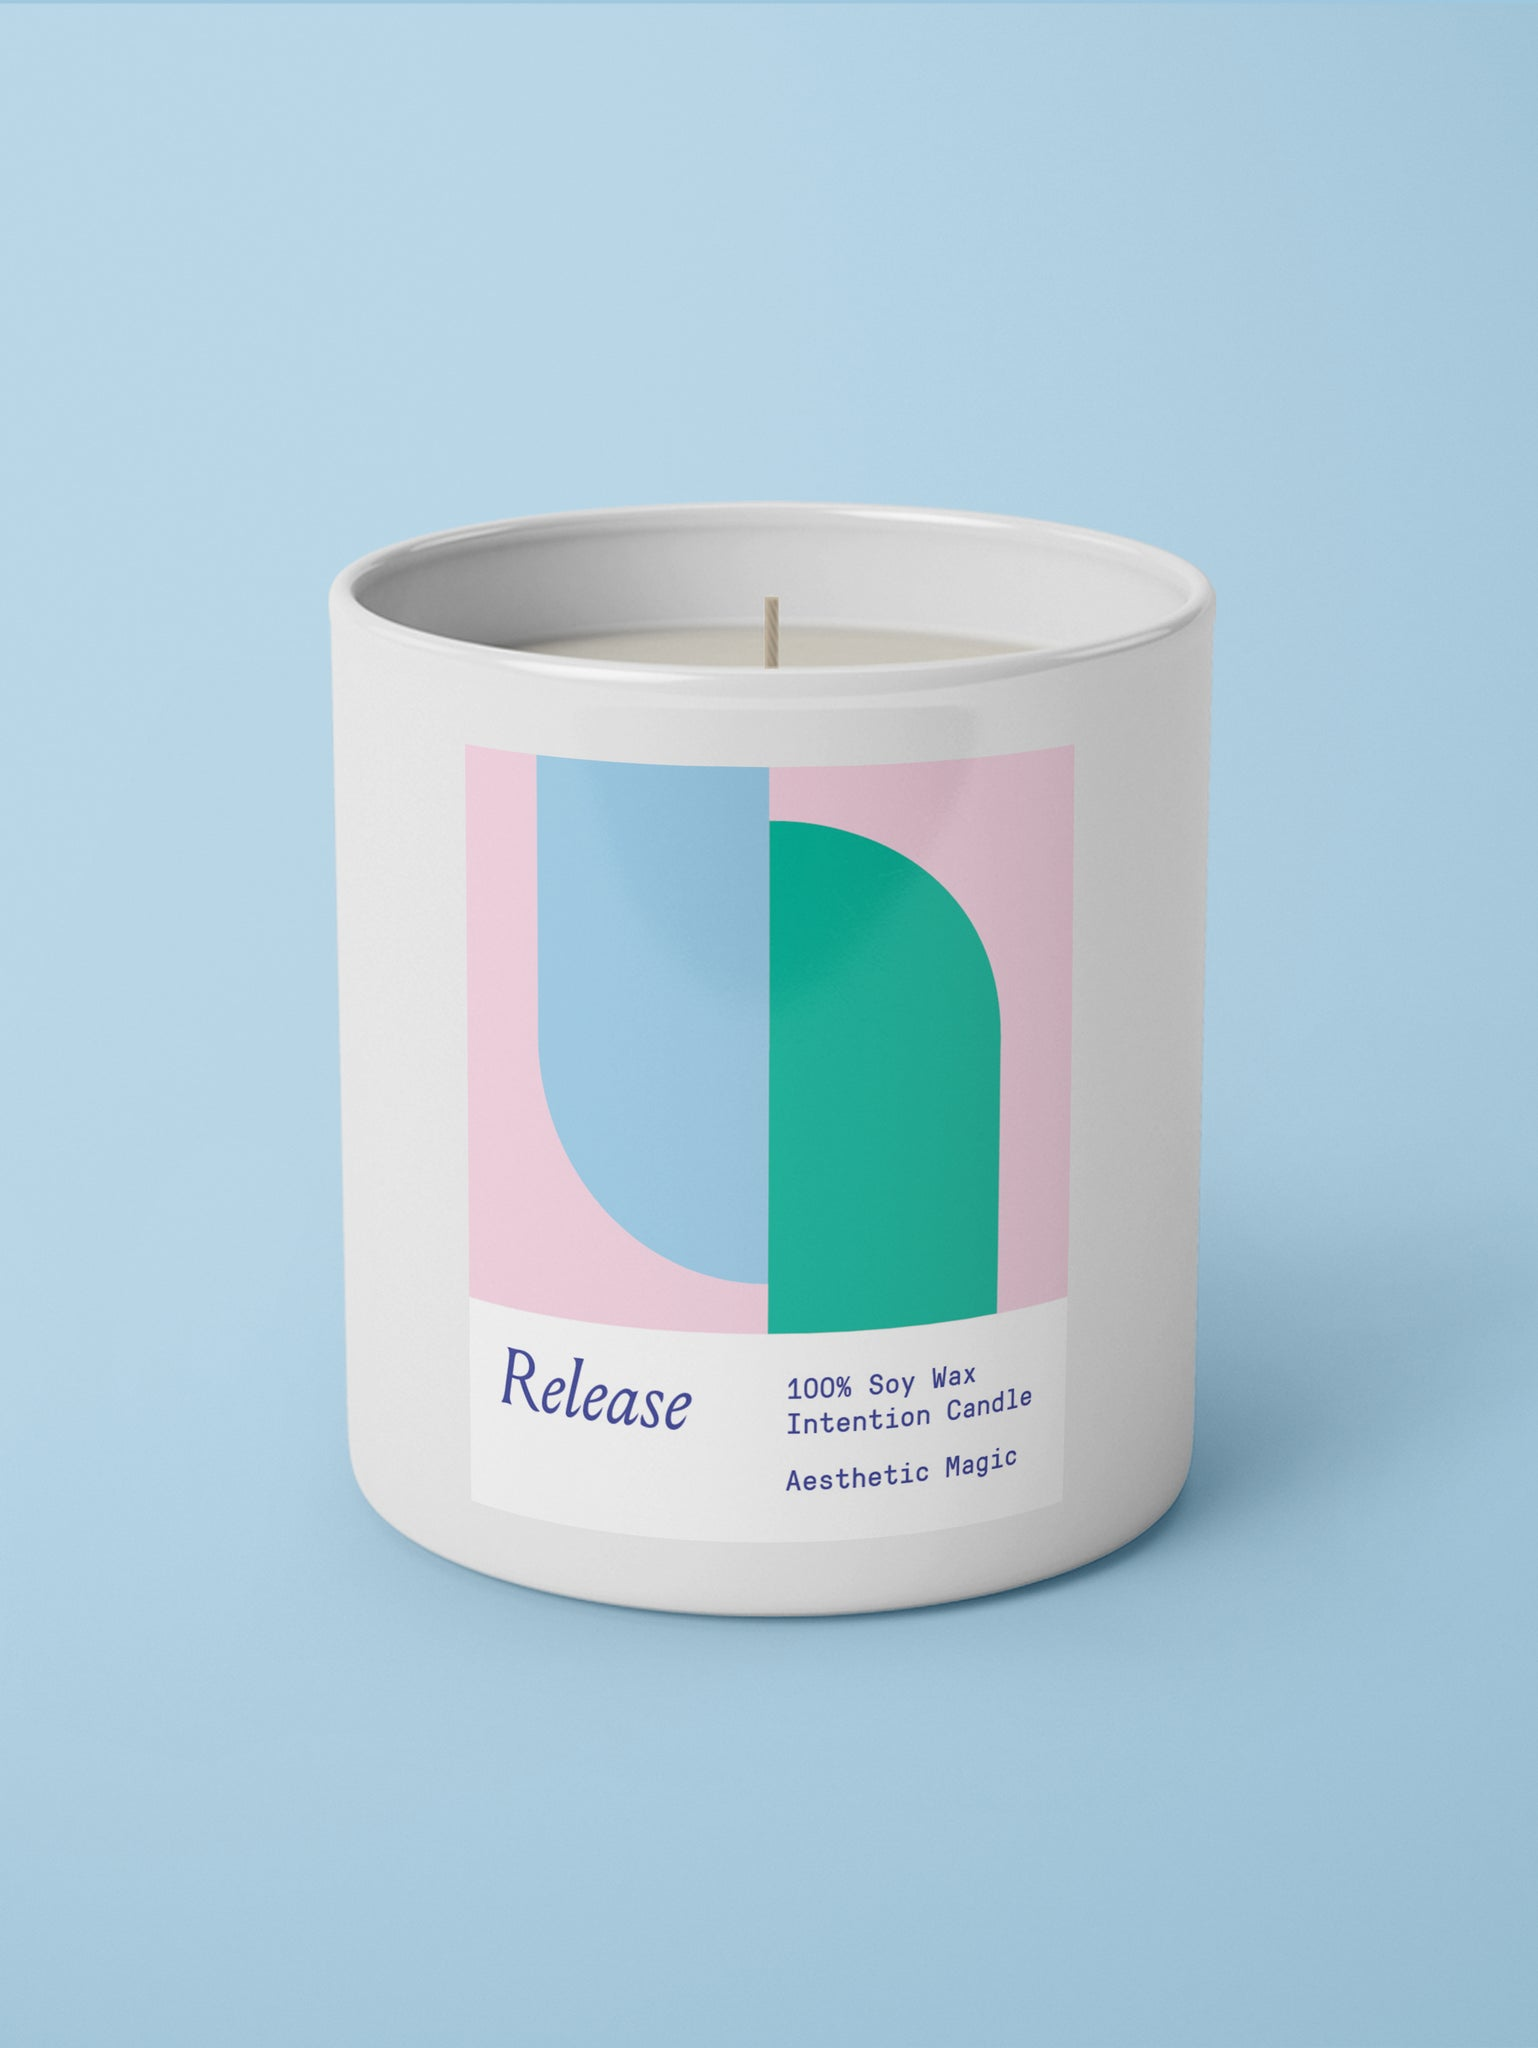 Release Intention Candle